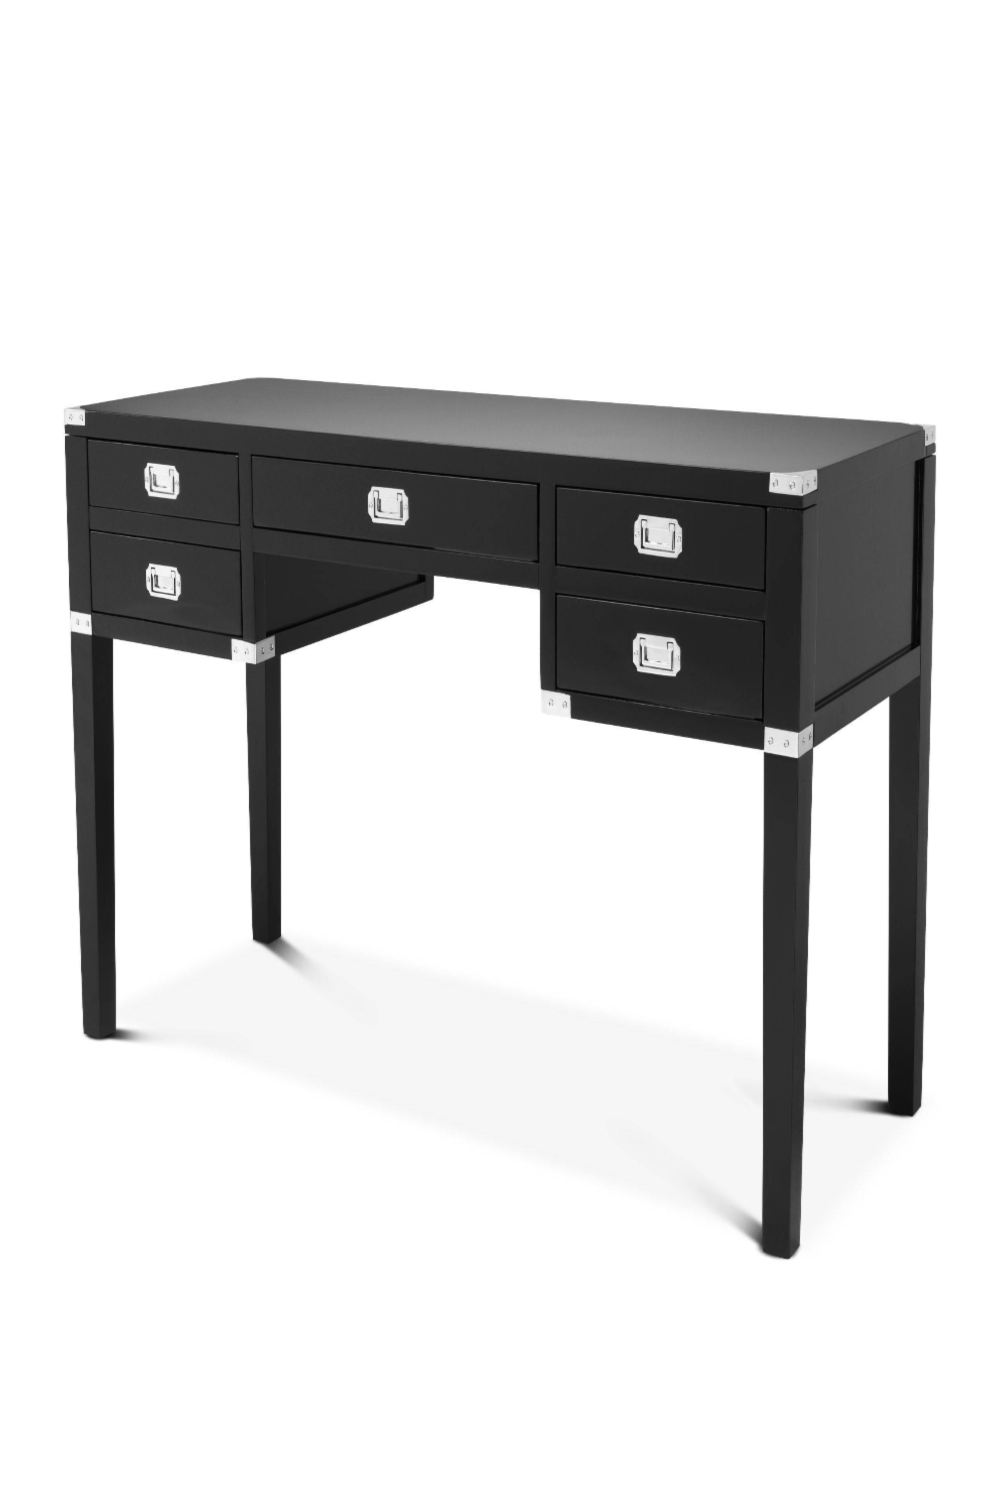 Black Office Desk | Eichholtz Andrew | #1 Eichholtz Retailer